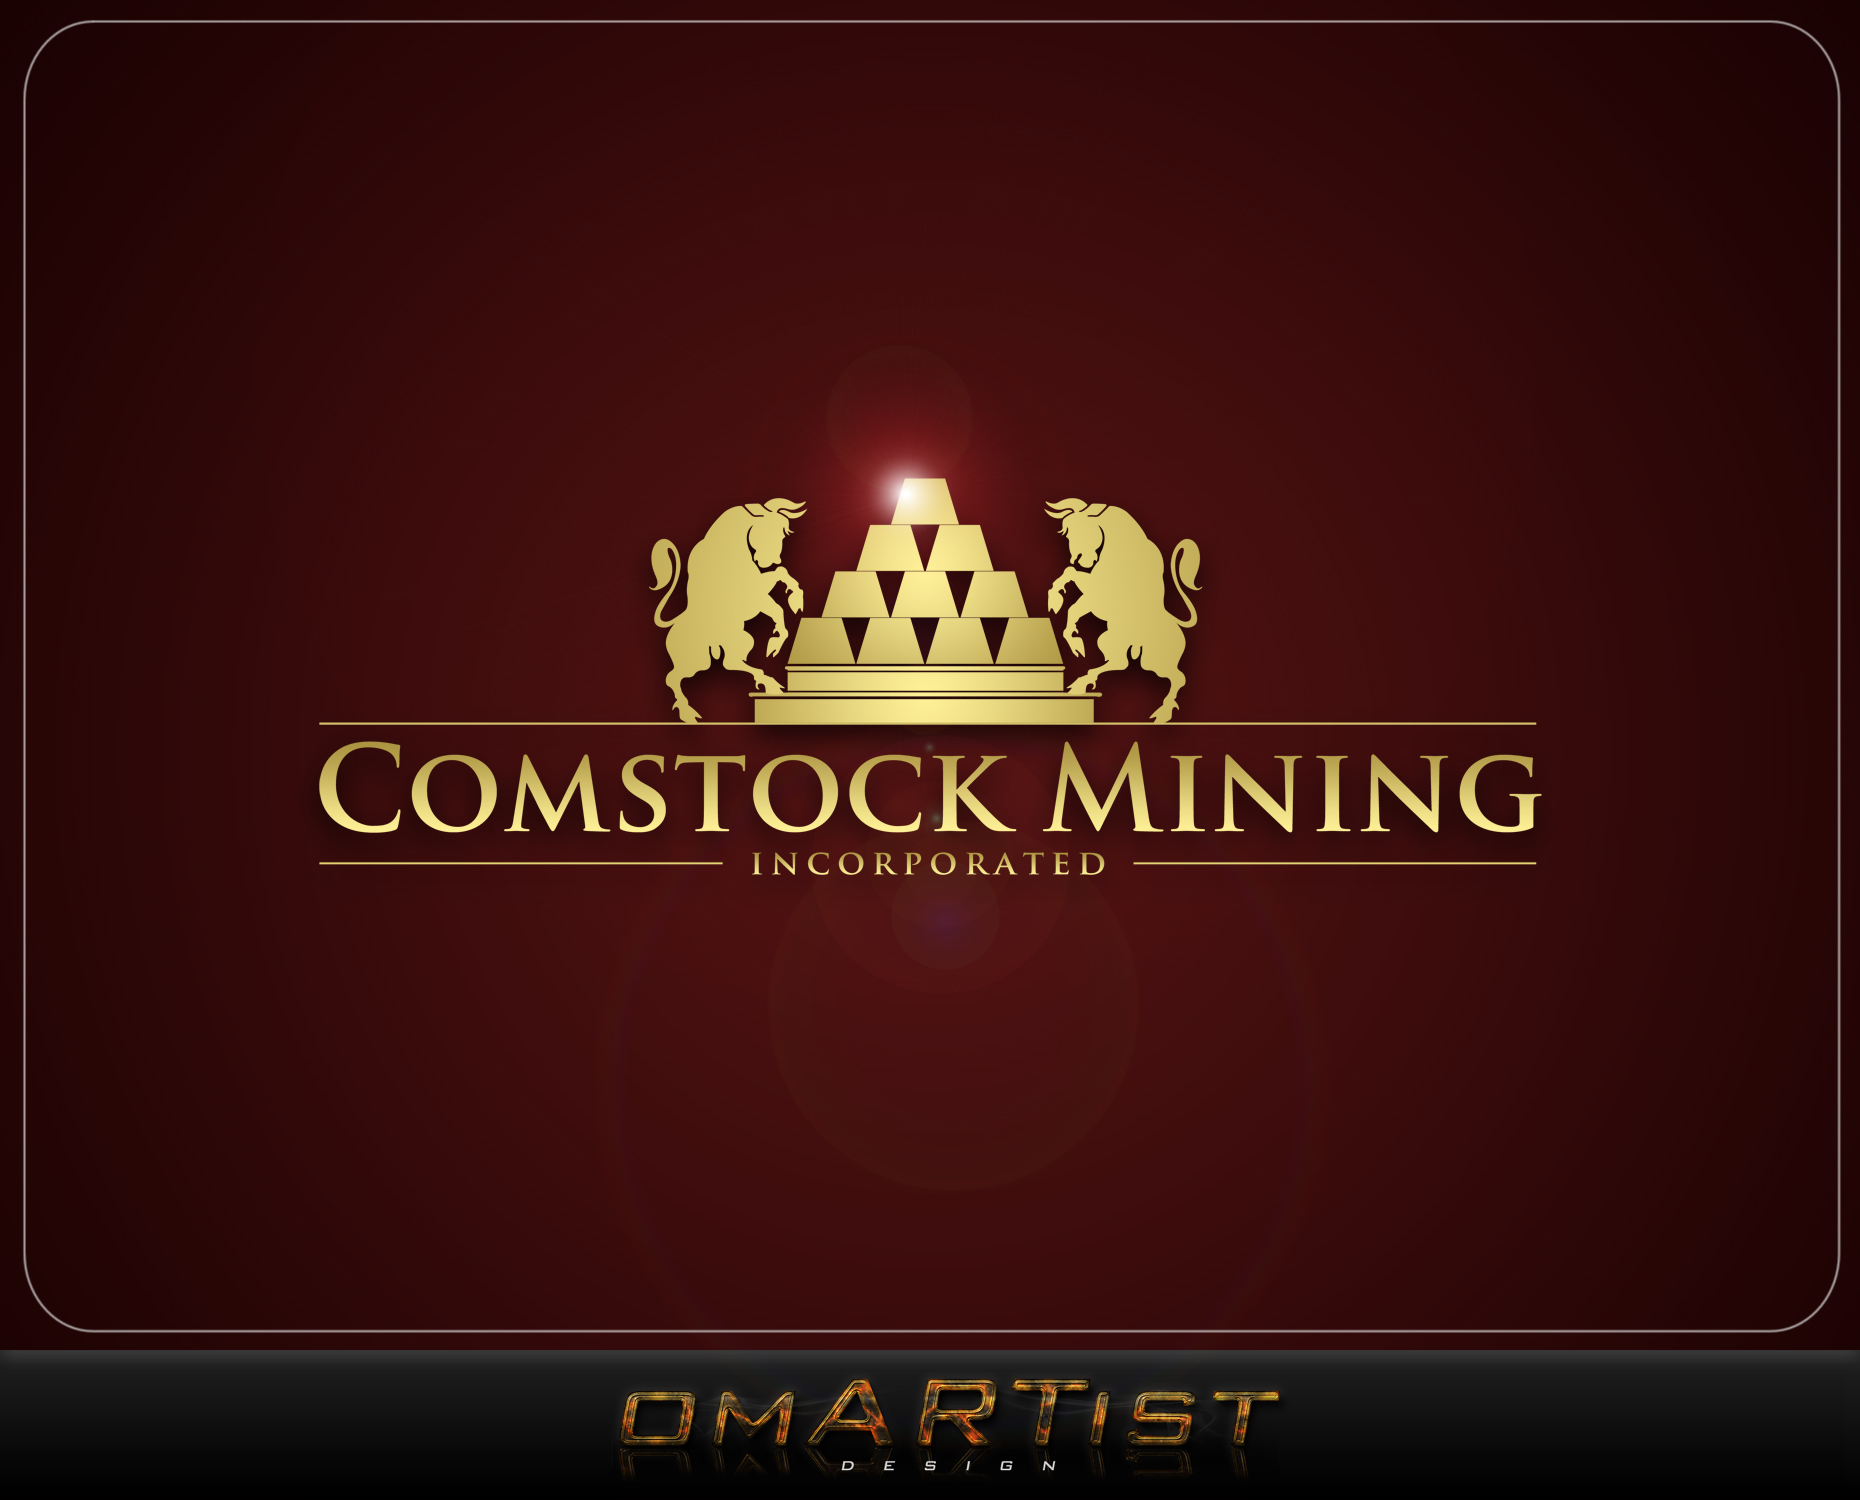 Logo Design by omARTist - Entry No. 85 in the Logo Design Contest Captivating Logo Design for Comstock Mining, Inc..